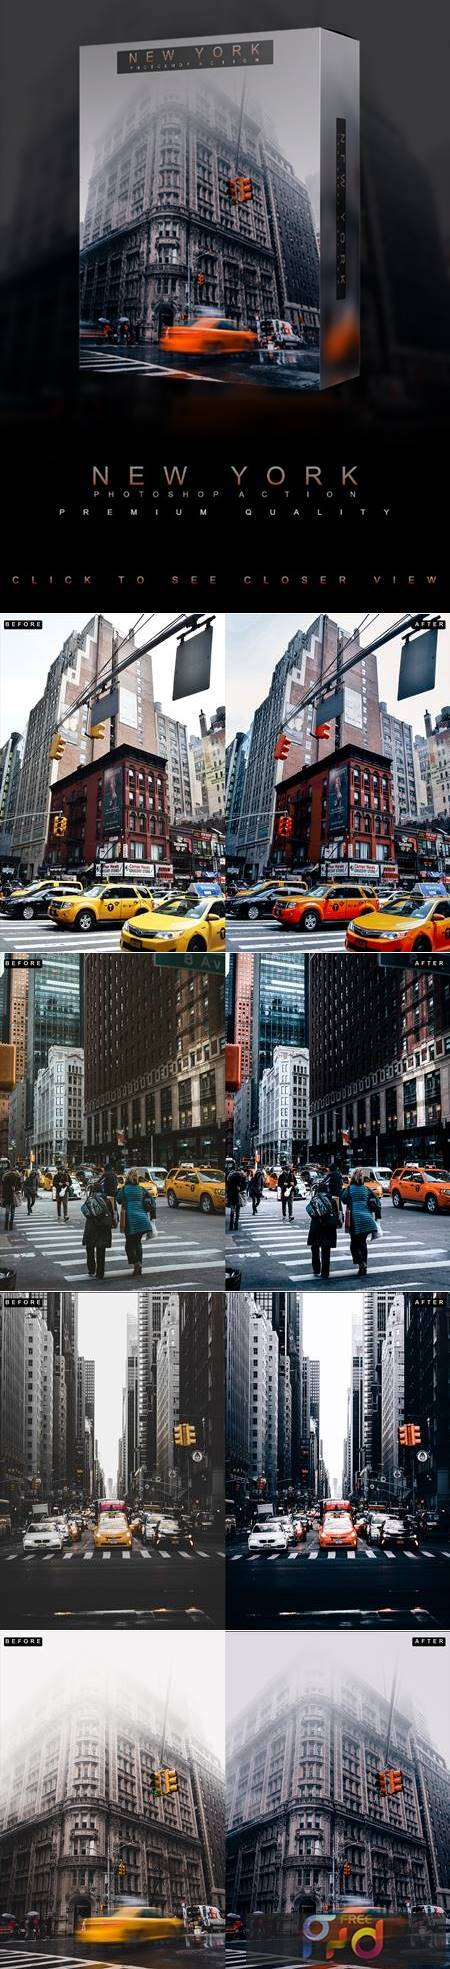 Famous Citys - NEW YORK - Photoshop Action 26752166 1